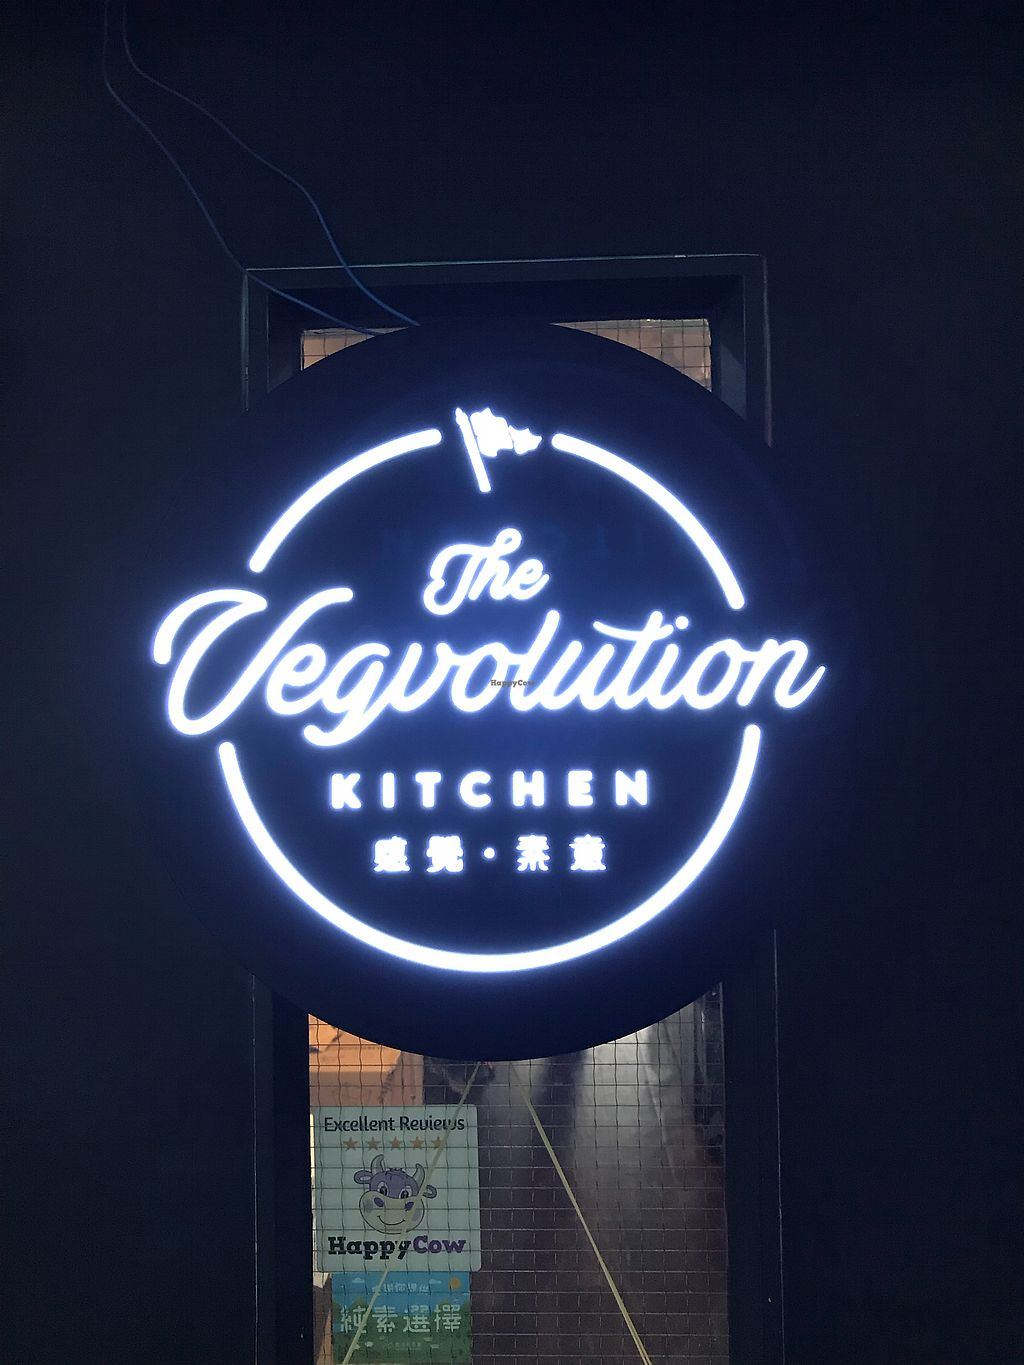 """Photo of The Vegvolution Kitchen  by <a href=""""/members/profile/carlosccr"""">carlosccr</a> <br/>The entrance sign  <br/> January 22, 2018  - <a href='/contact/abuse/image/101803/349660'>Report</a>"""